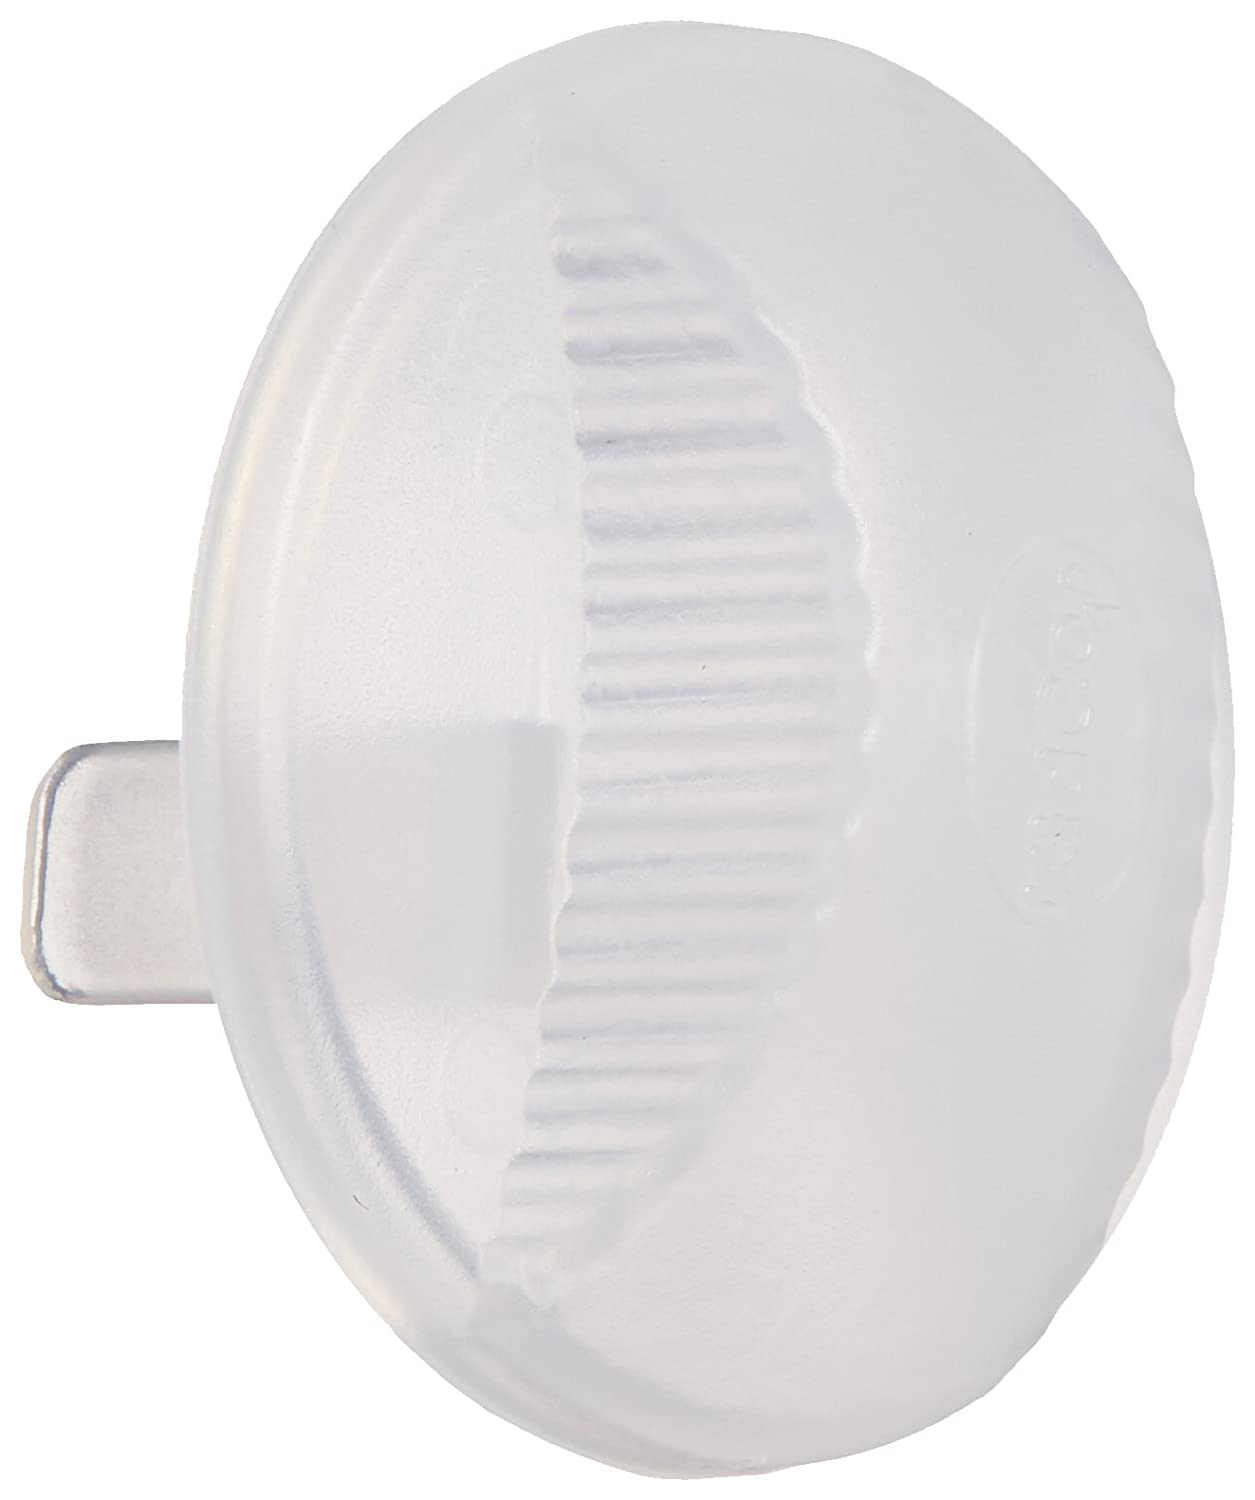 KidCO 24 Count Electrical Outlet Cap